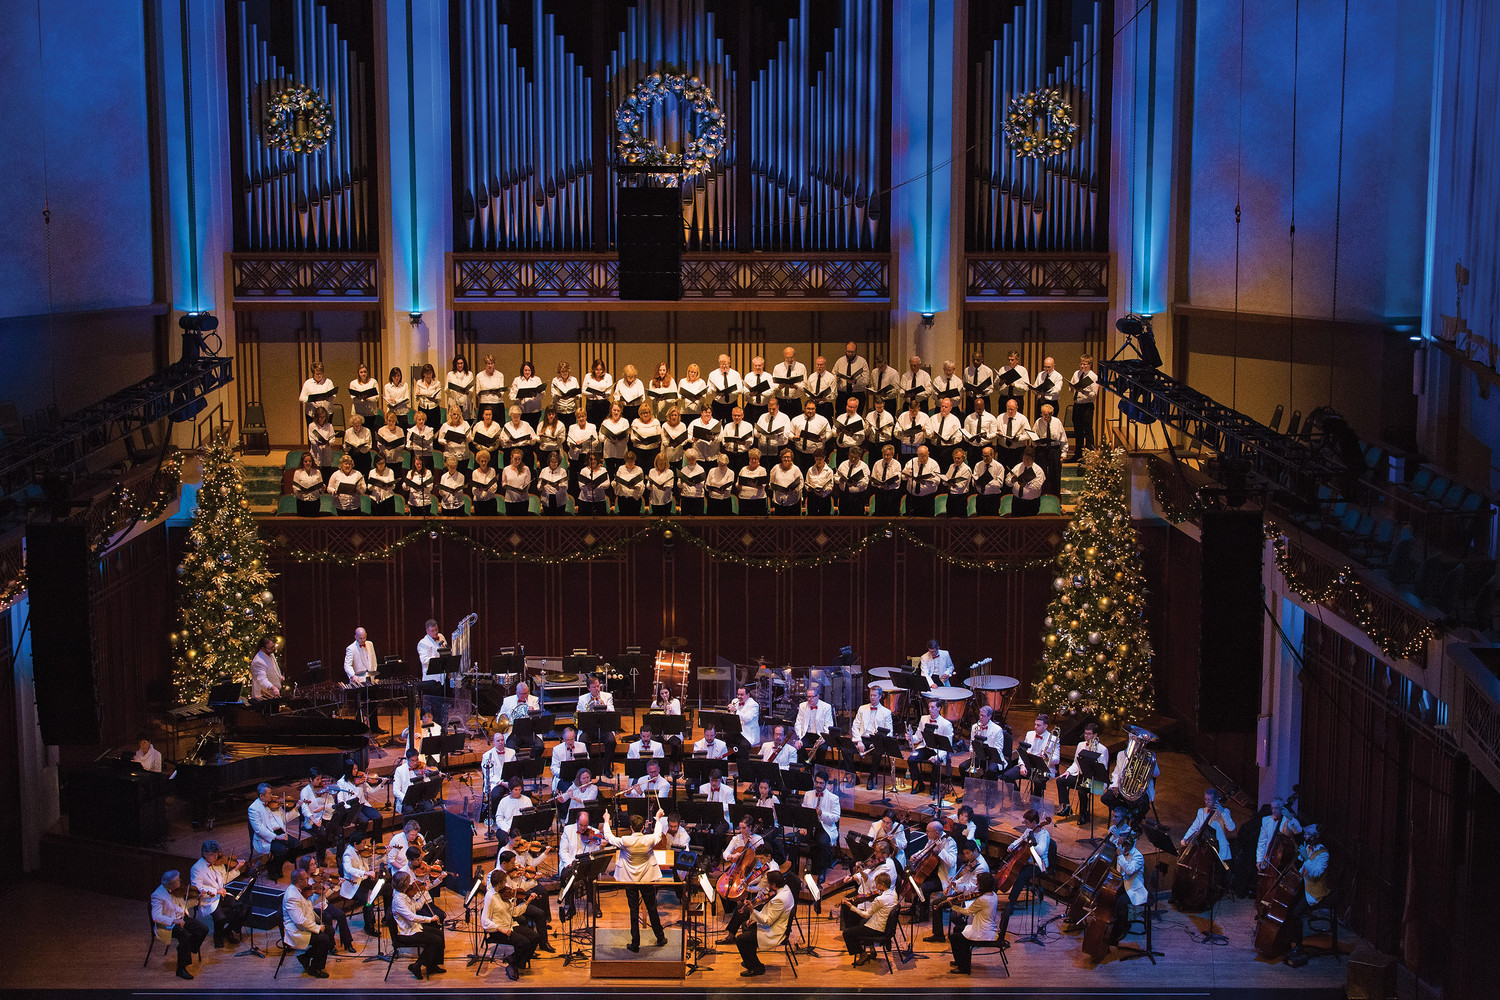 Jacksonville Symphony's Holiday Pops concerts will take place Dec. 6-9 at the Times-Union Center for the Performing Arts in Jacoby Symphony Hall.